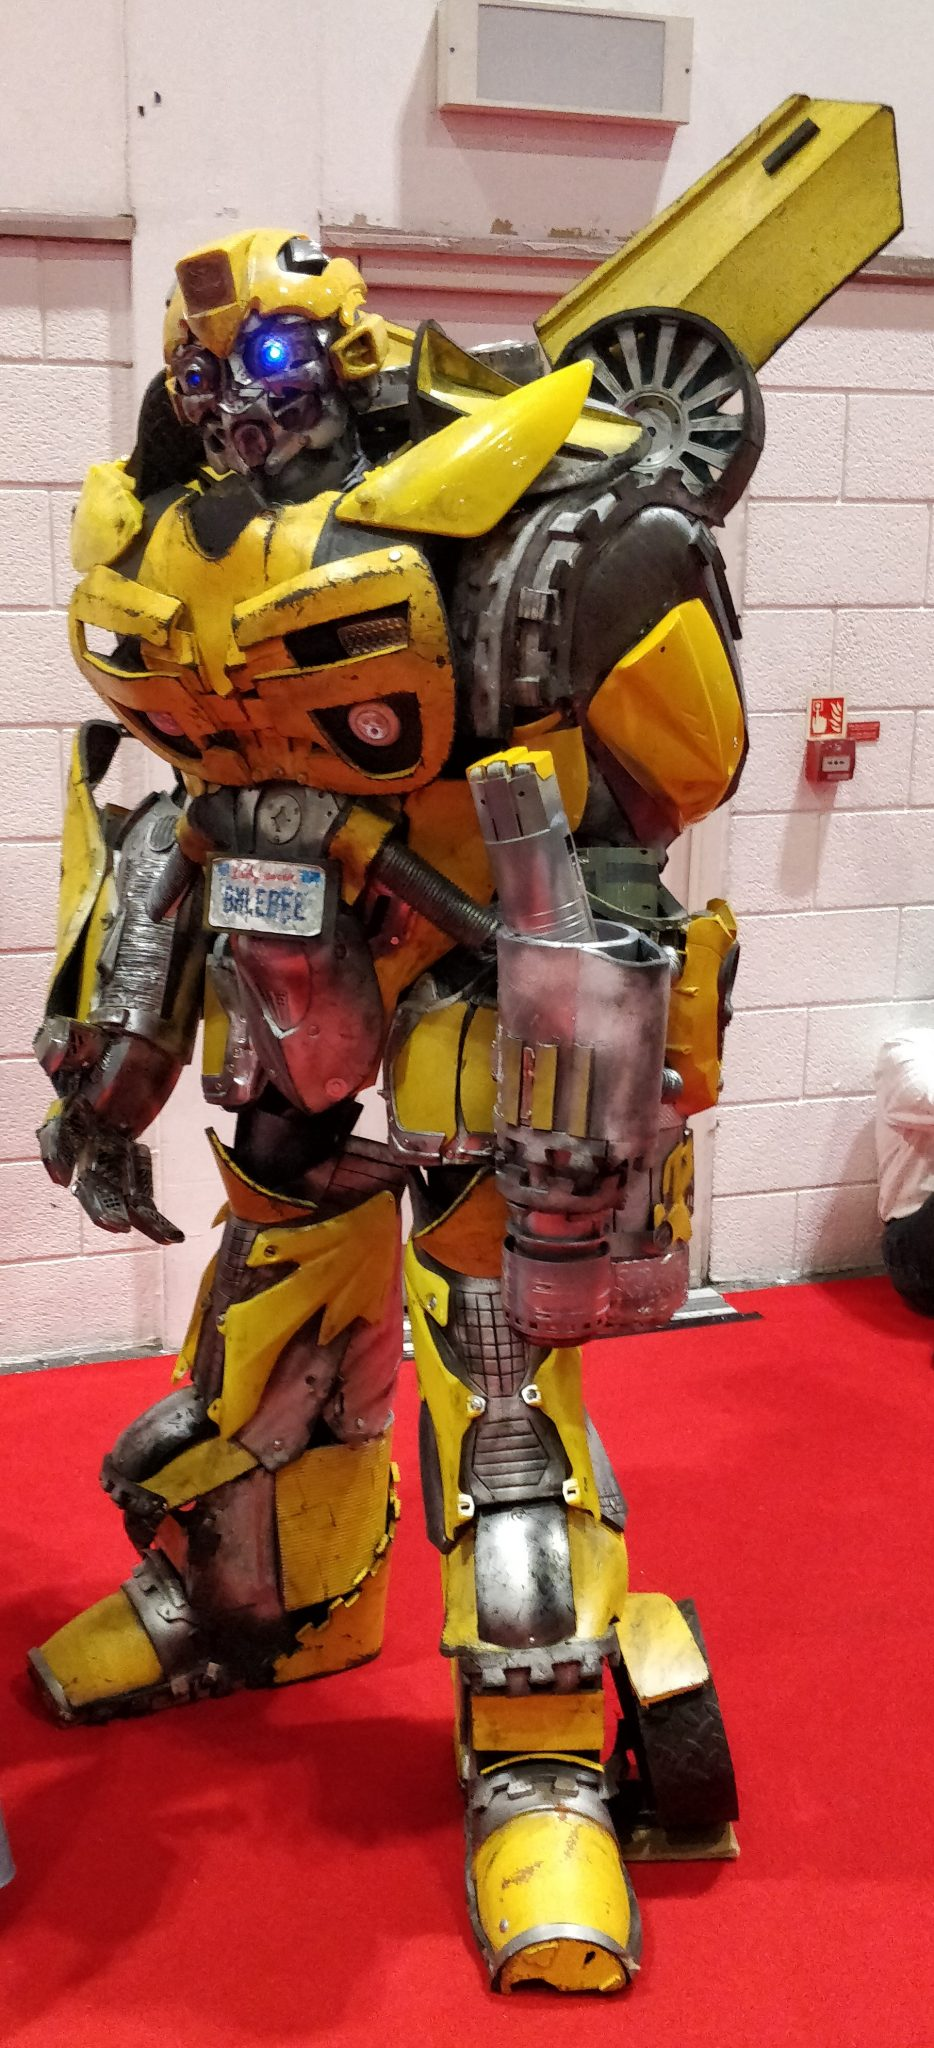 Bumblebee at the London MCM Comic Con